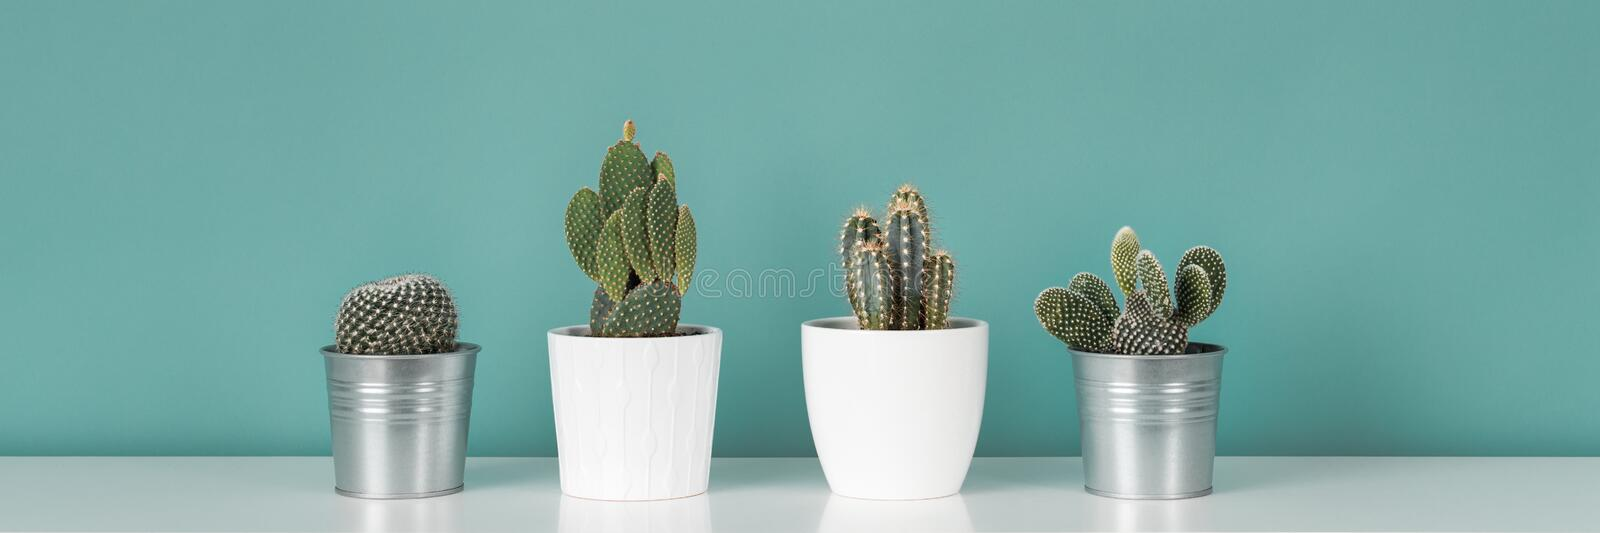 Collection of various potted cactus house plants on white shelf against pastel turquoise colored wall. Cactus plants banner. Modern room decoration. Collection royalty free stock photos